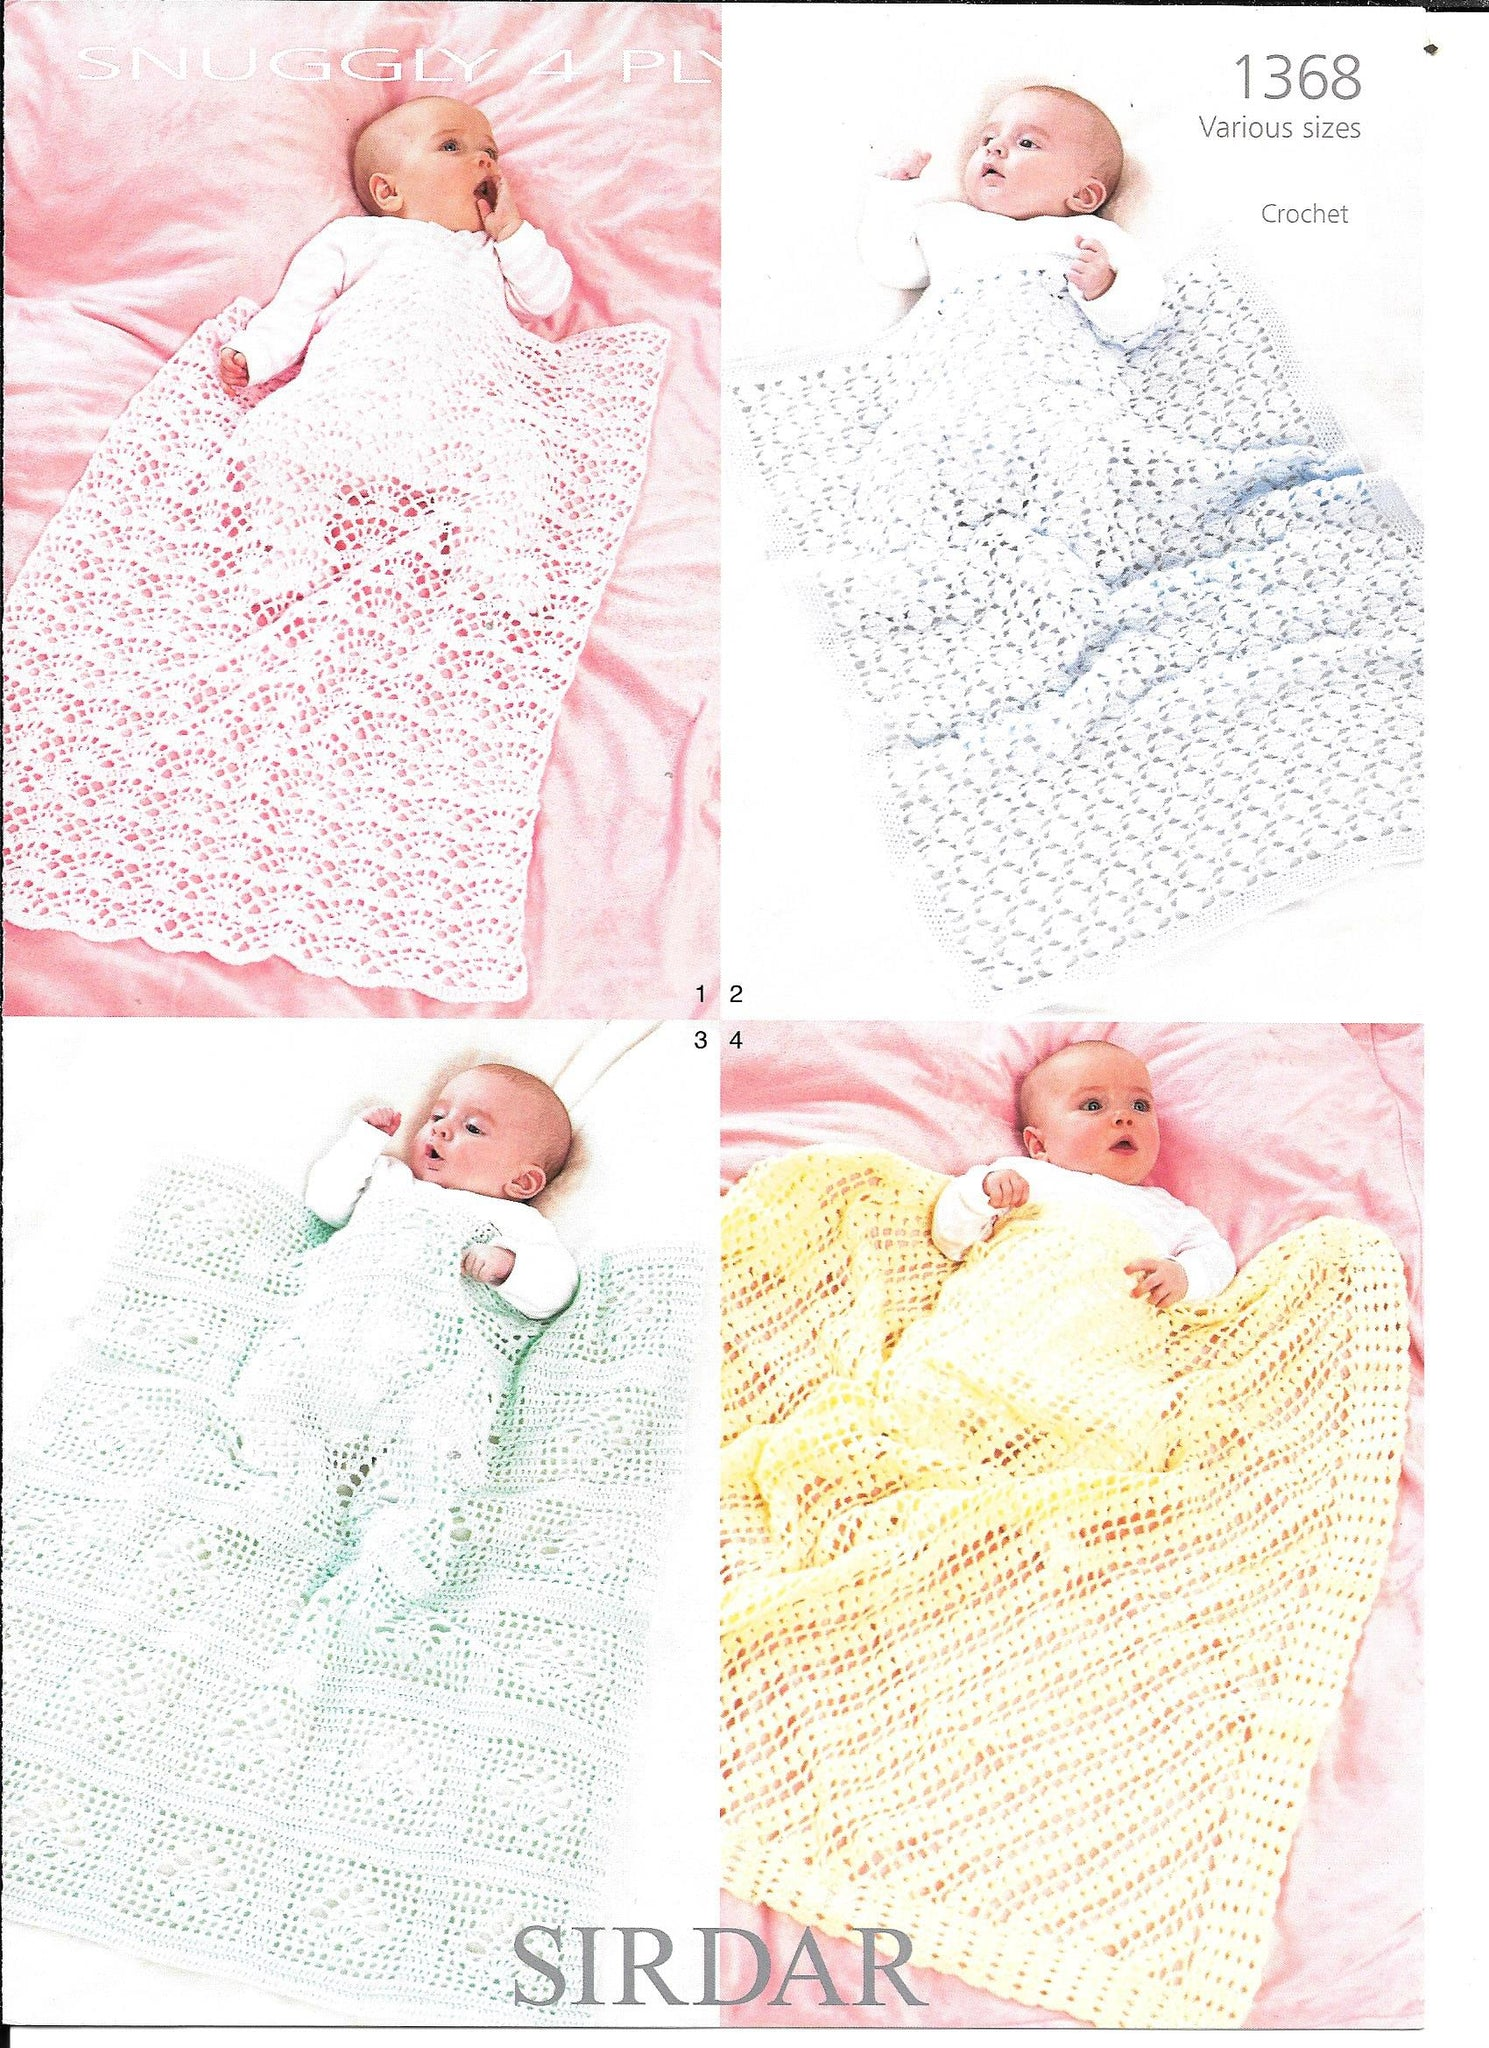 1368 Sirdar Blankets and Shawls in Sirdar Snuggly 4ply - 1368 crochet pattern